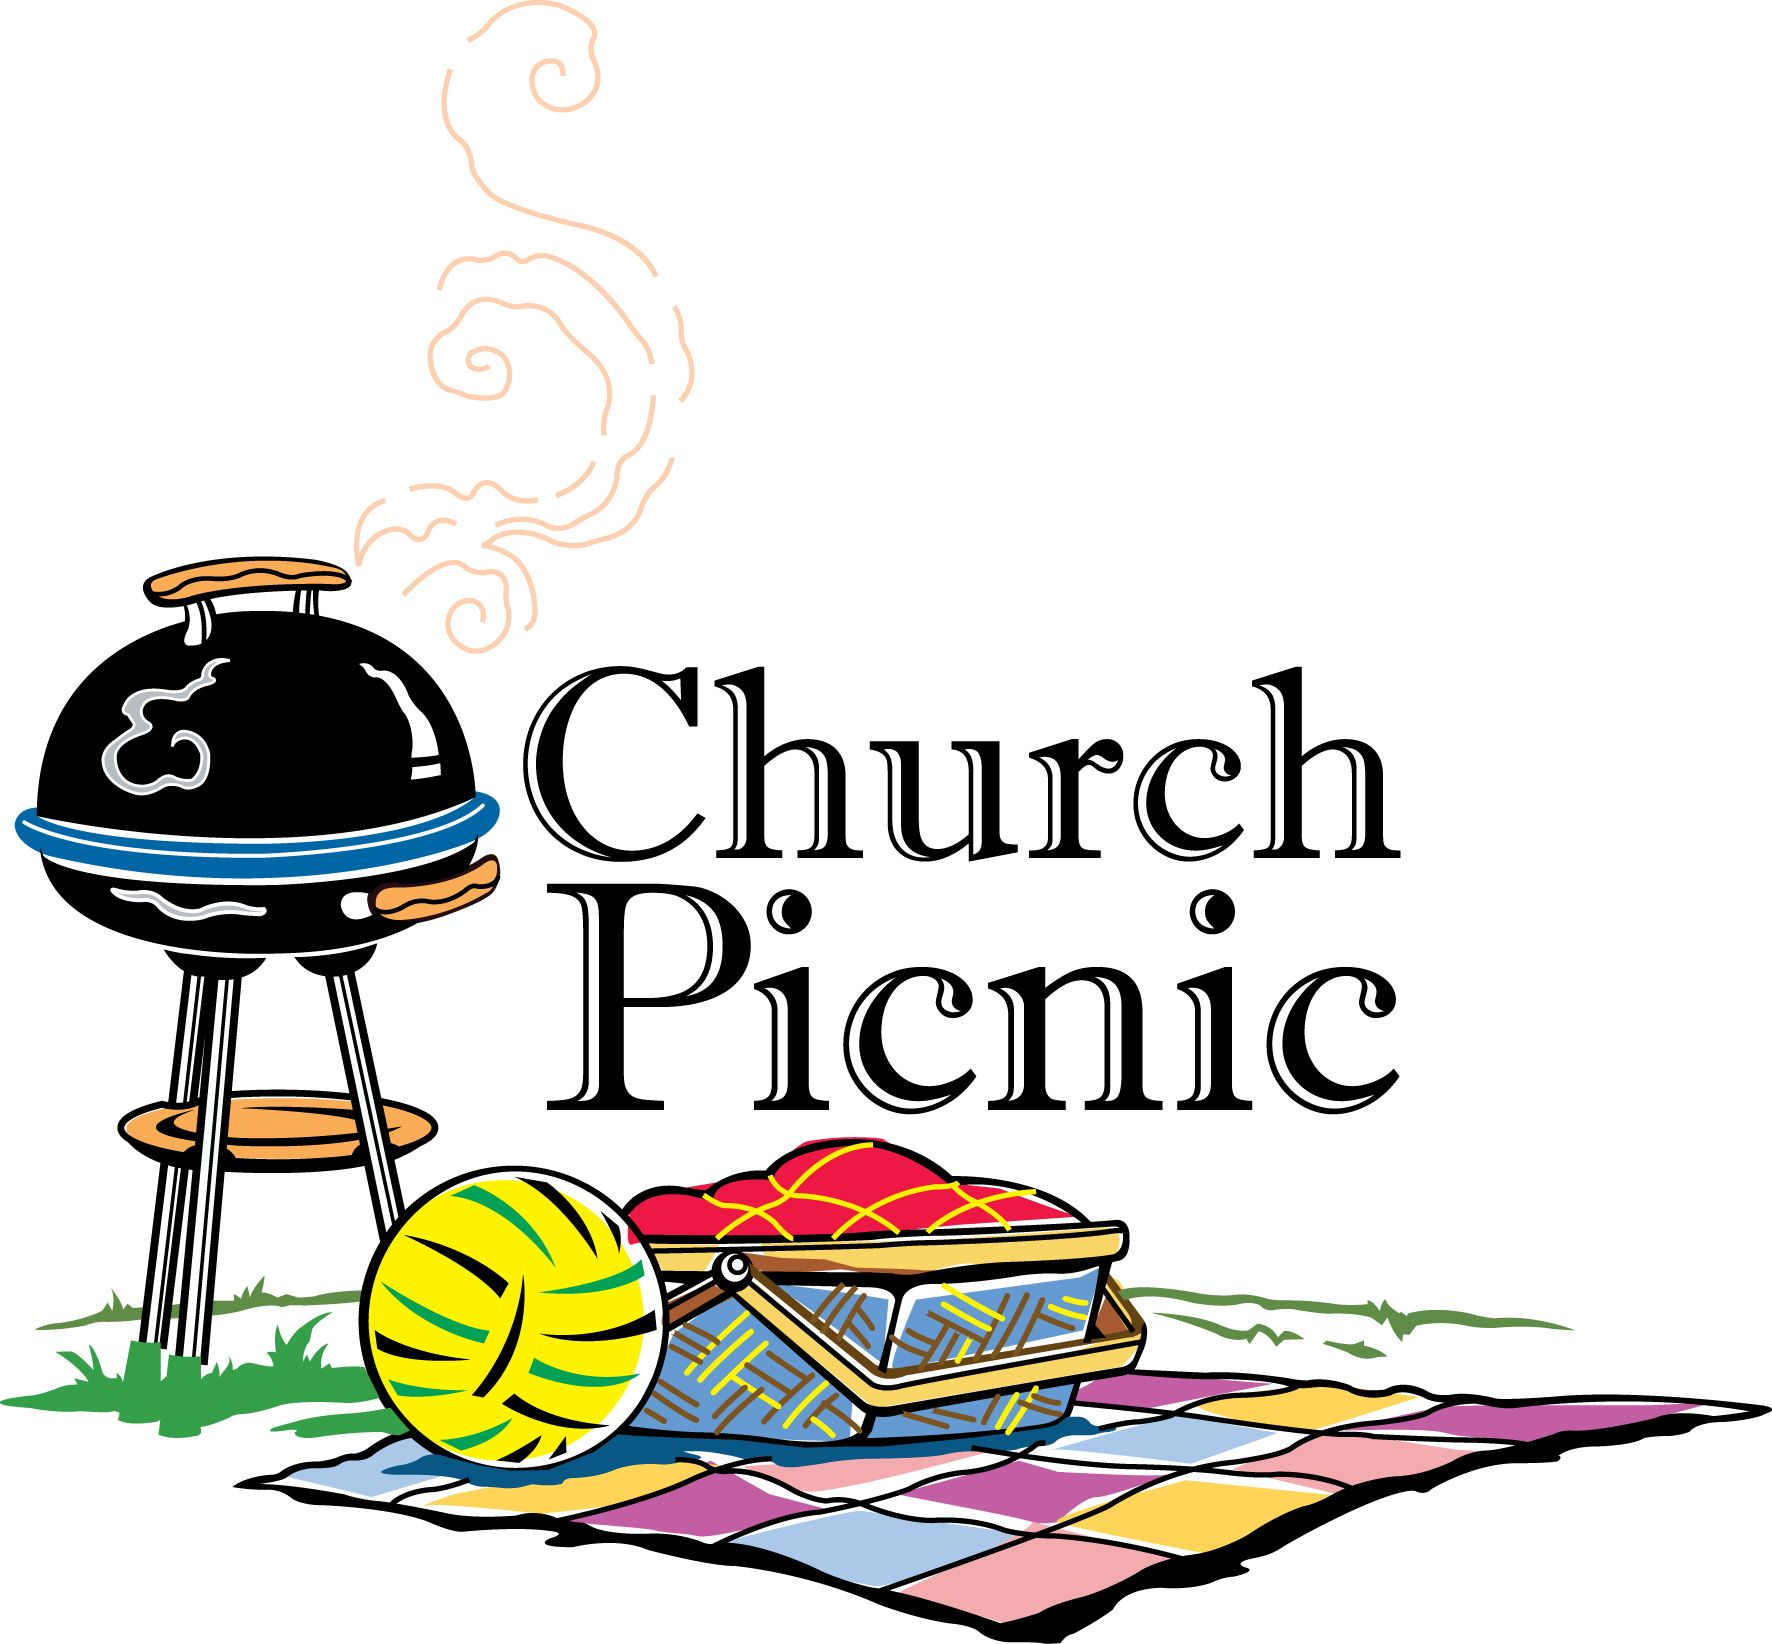 picnic food clipart at getdrawings com free for personal use rh getdrawings com picnic clipart black and white free picnic clipart black and white free